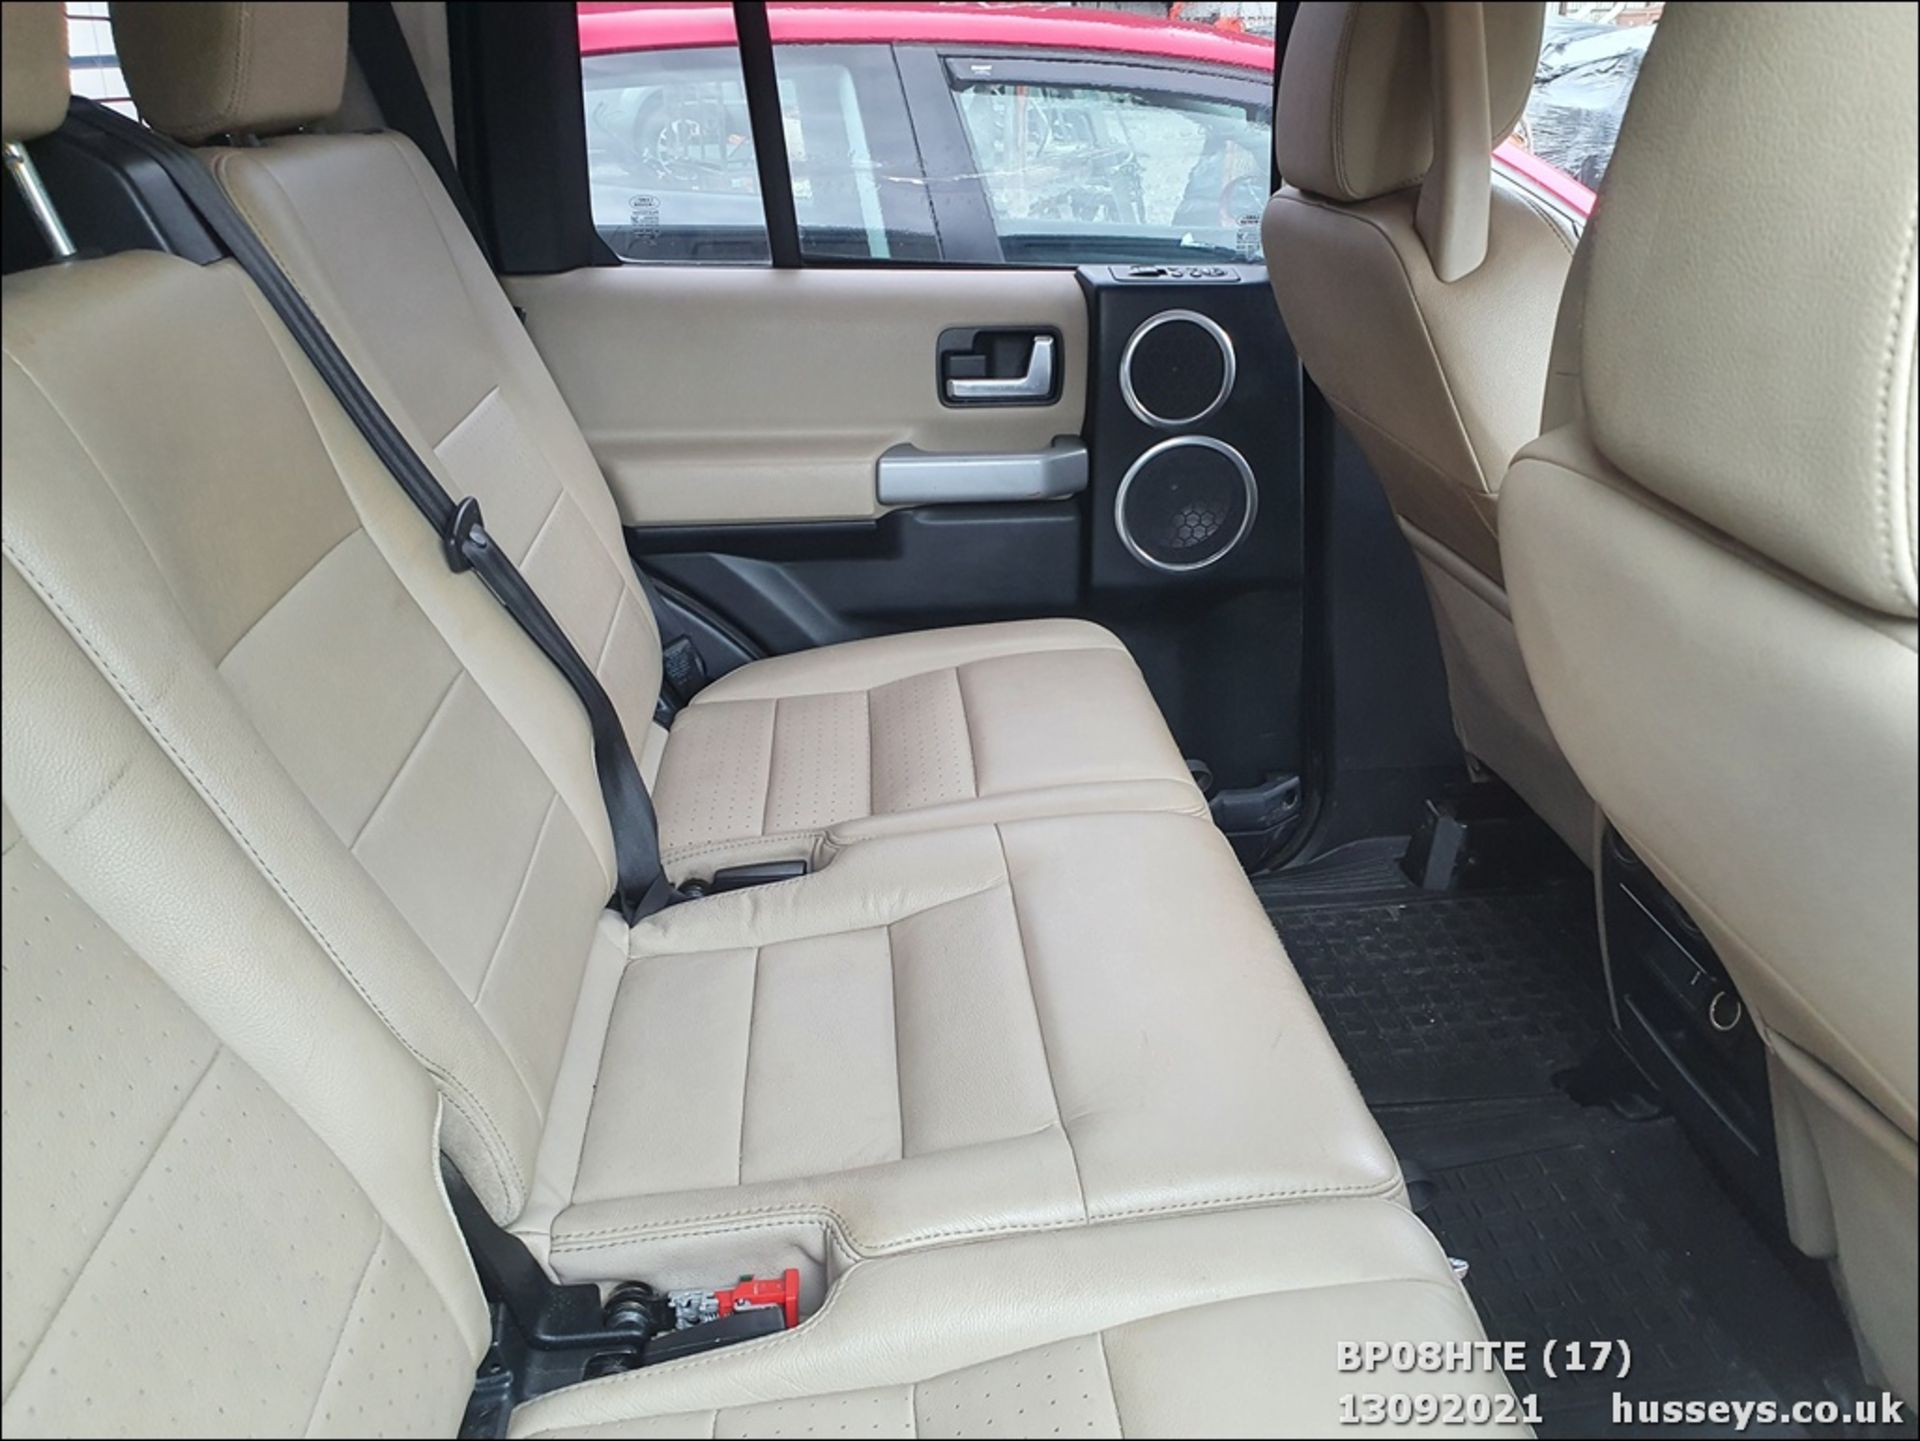 08/08 LAND ROVER DISCOVERY TDV6 SE A - 2720cc 5dr Estate (Brown, 190k) - Image 17 of 18